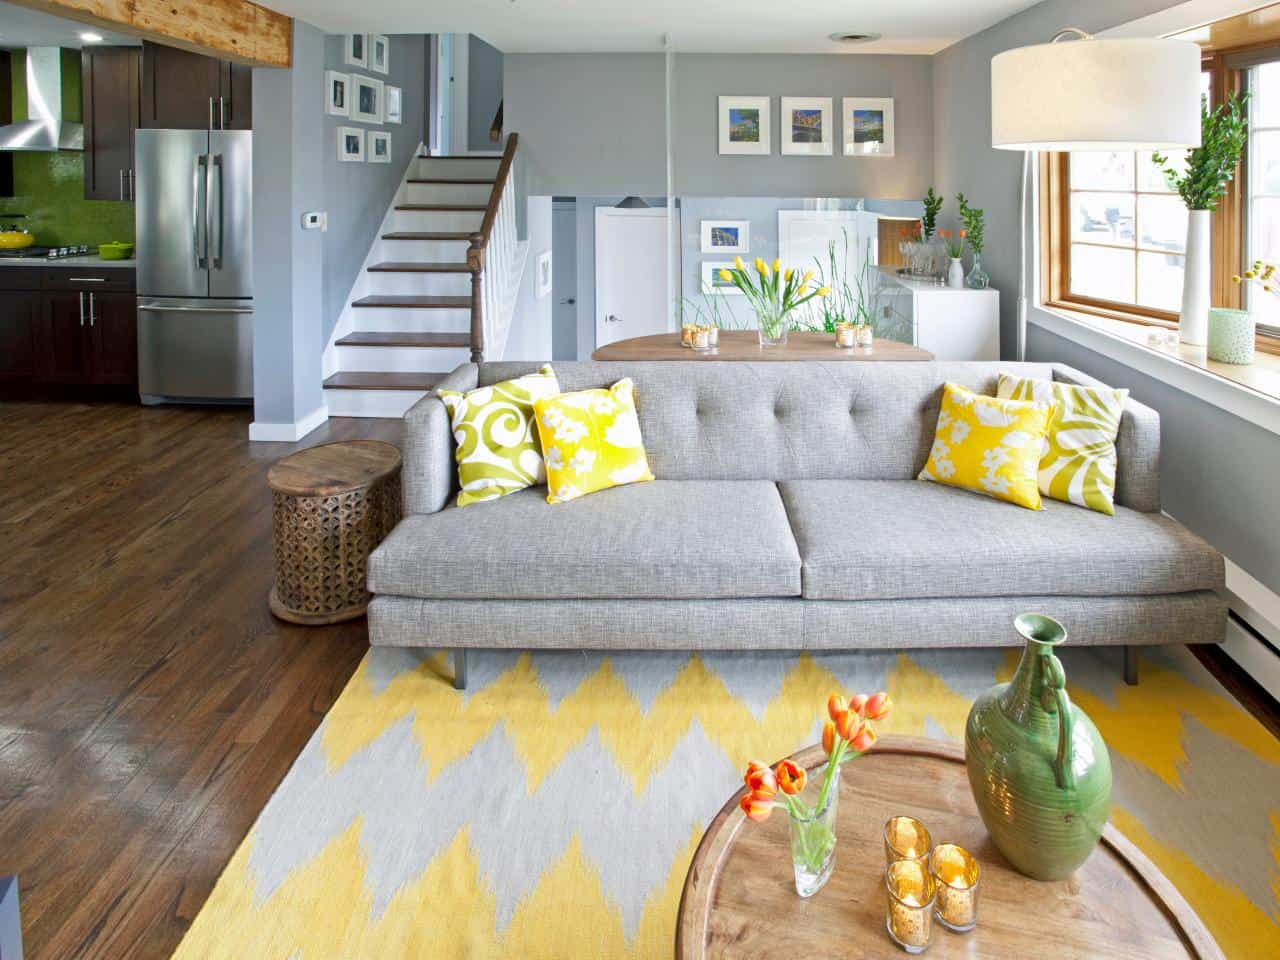 Patterned yellow pillows